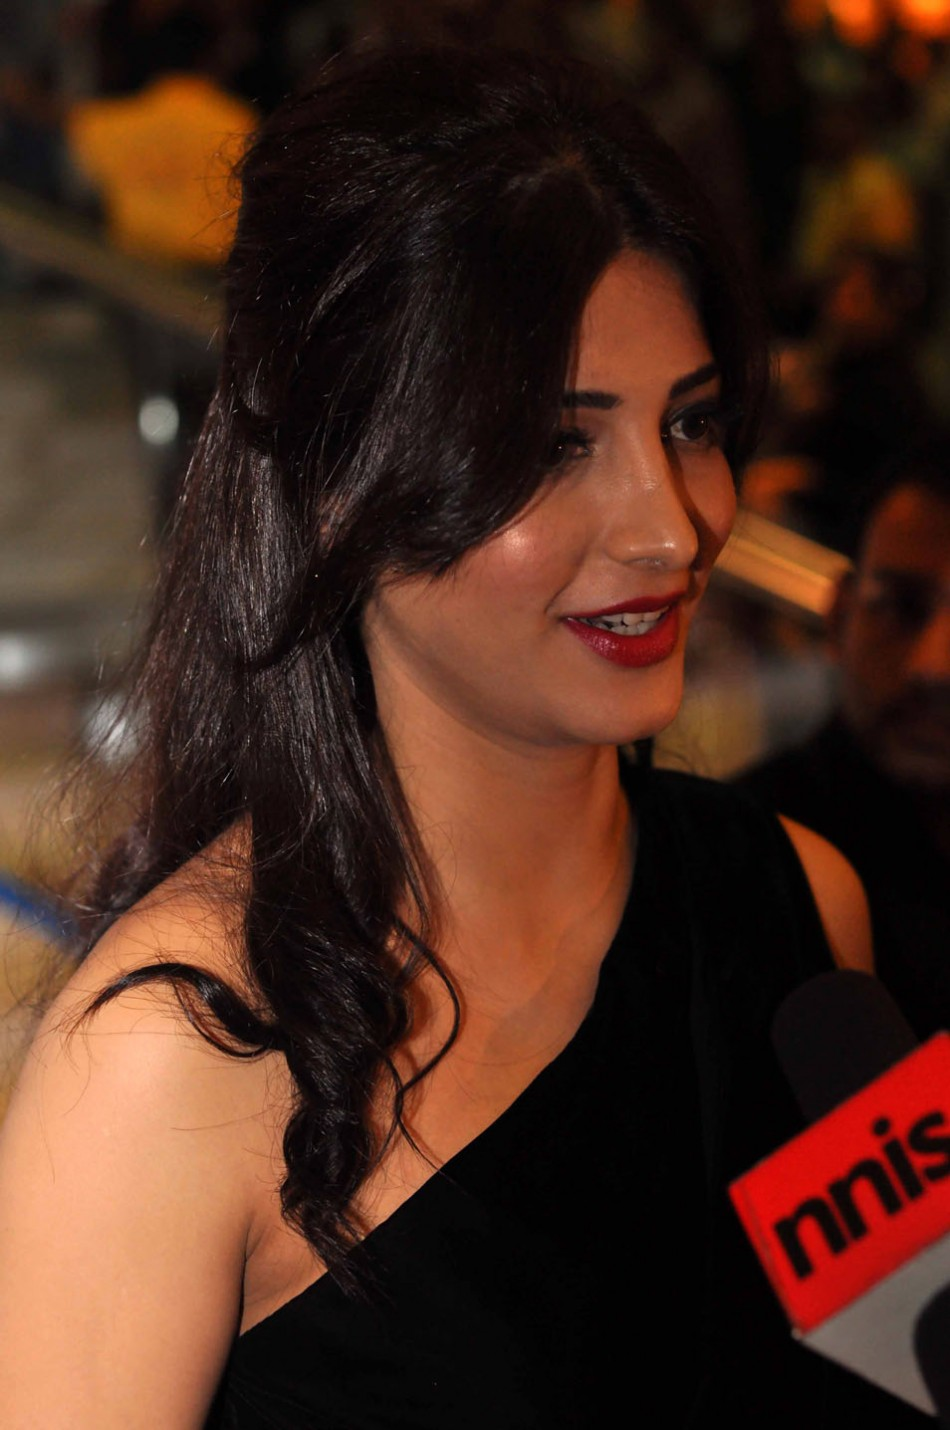 Indian actress Shruti Hasan at SIIMA awards 2012 in Dubai. Image: SIIMA